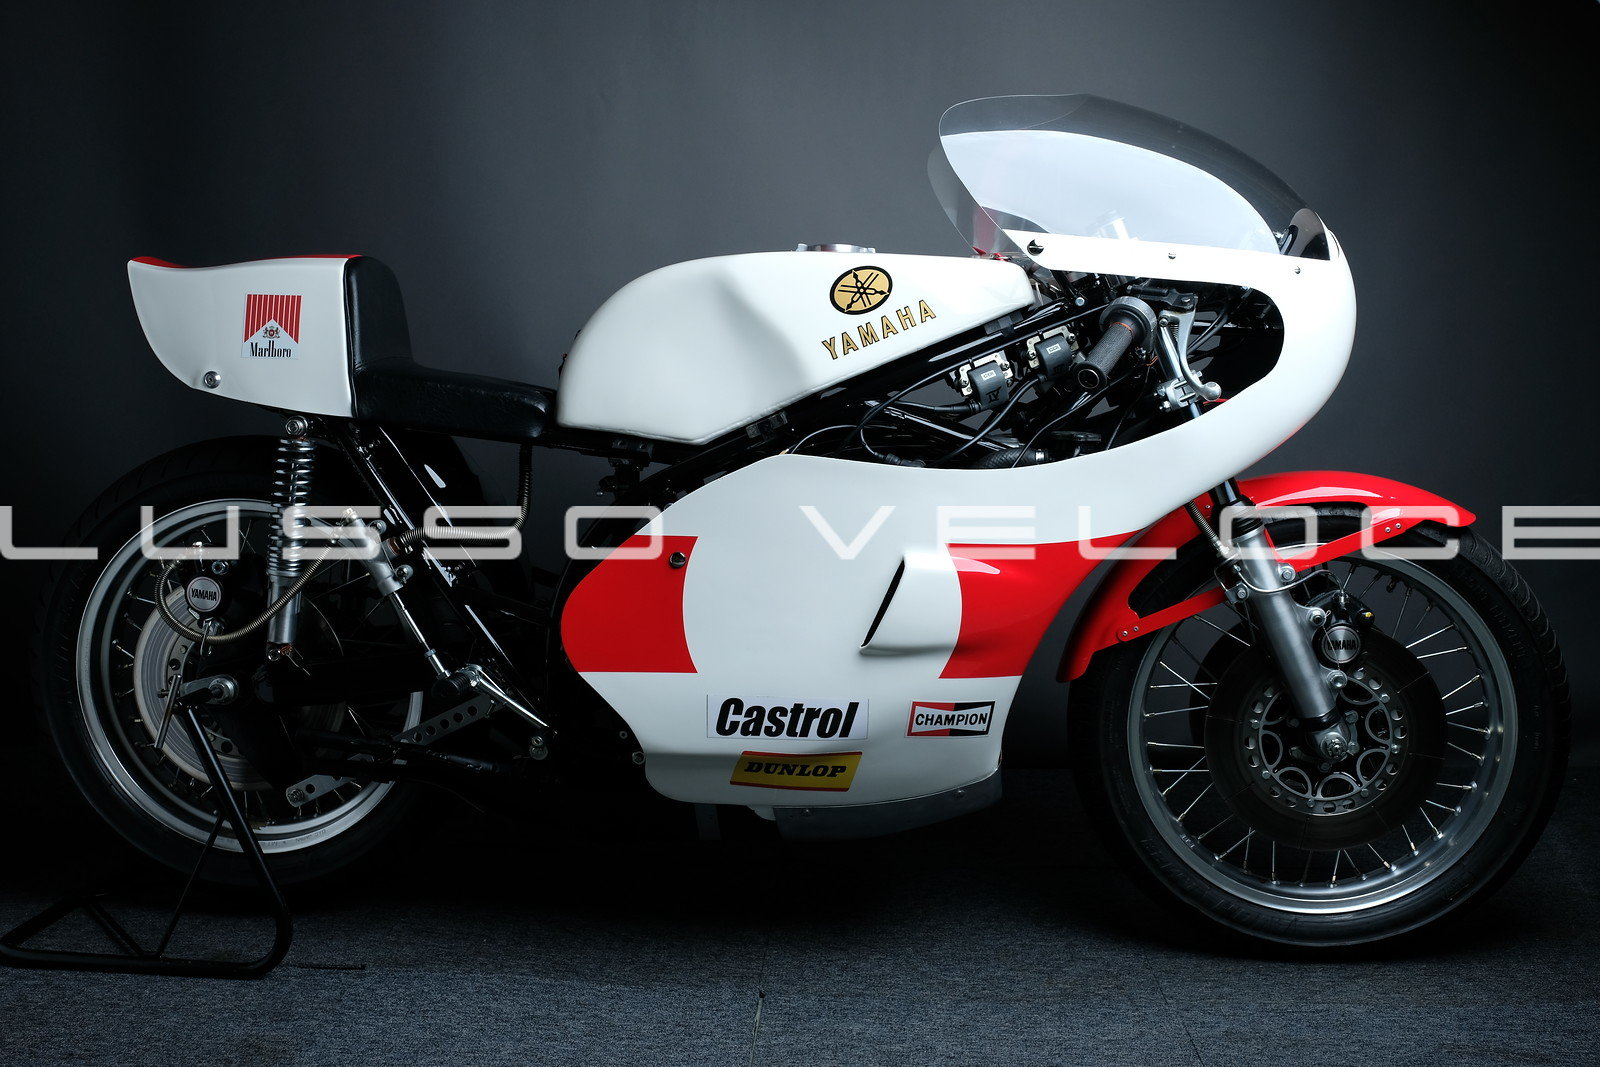 1975 Yamaha TZ 750 C GP Race bike  For Sale (picture 1 of 6)